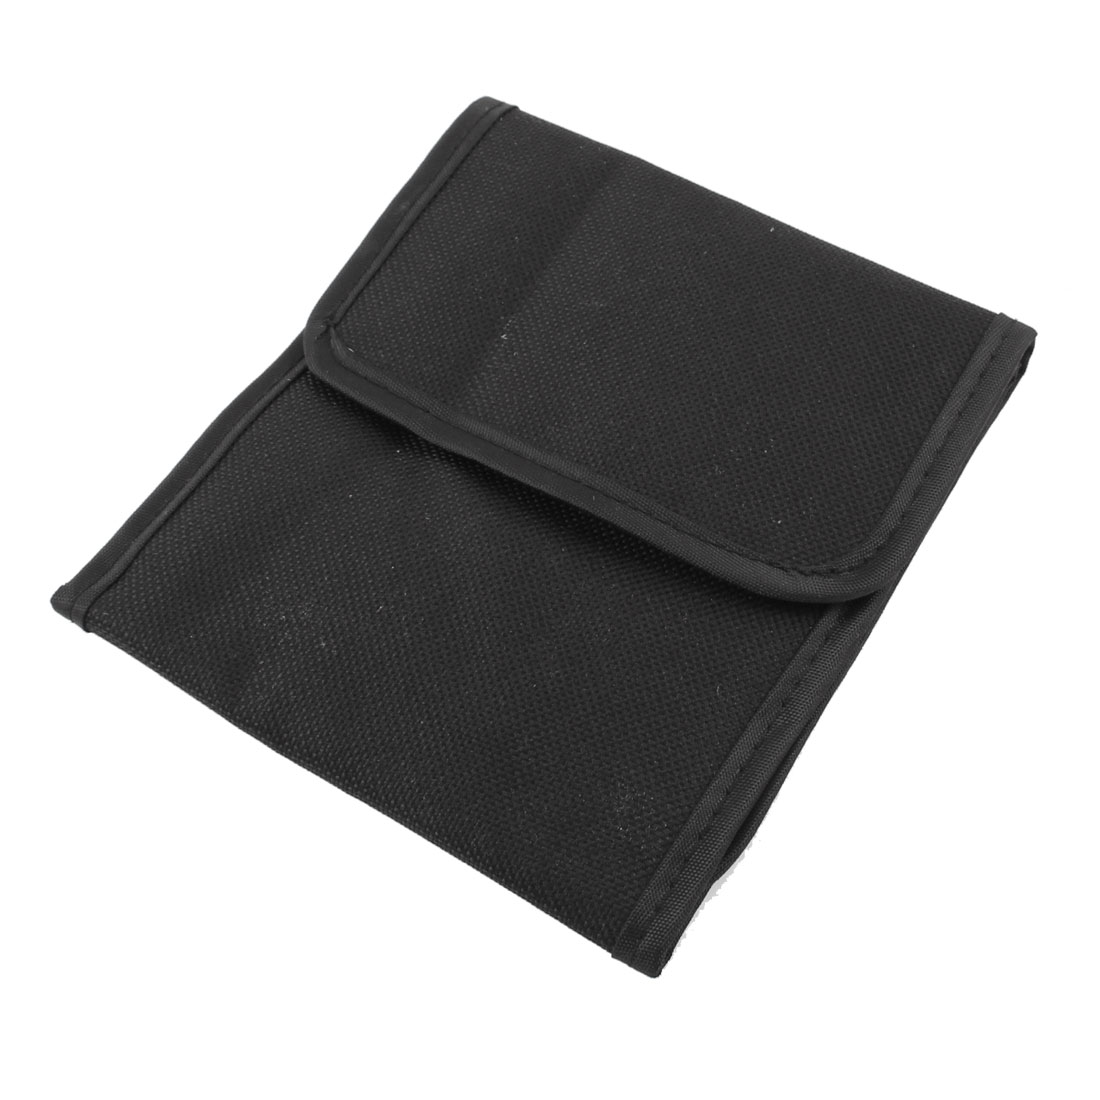 Black Foldable 3 Pockets Filter Lens Case Holder Pouch Bag for Camera